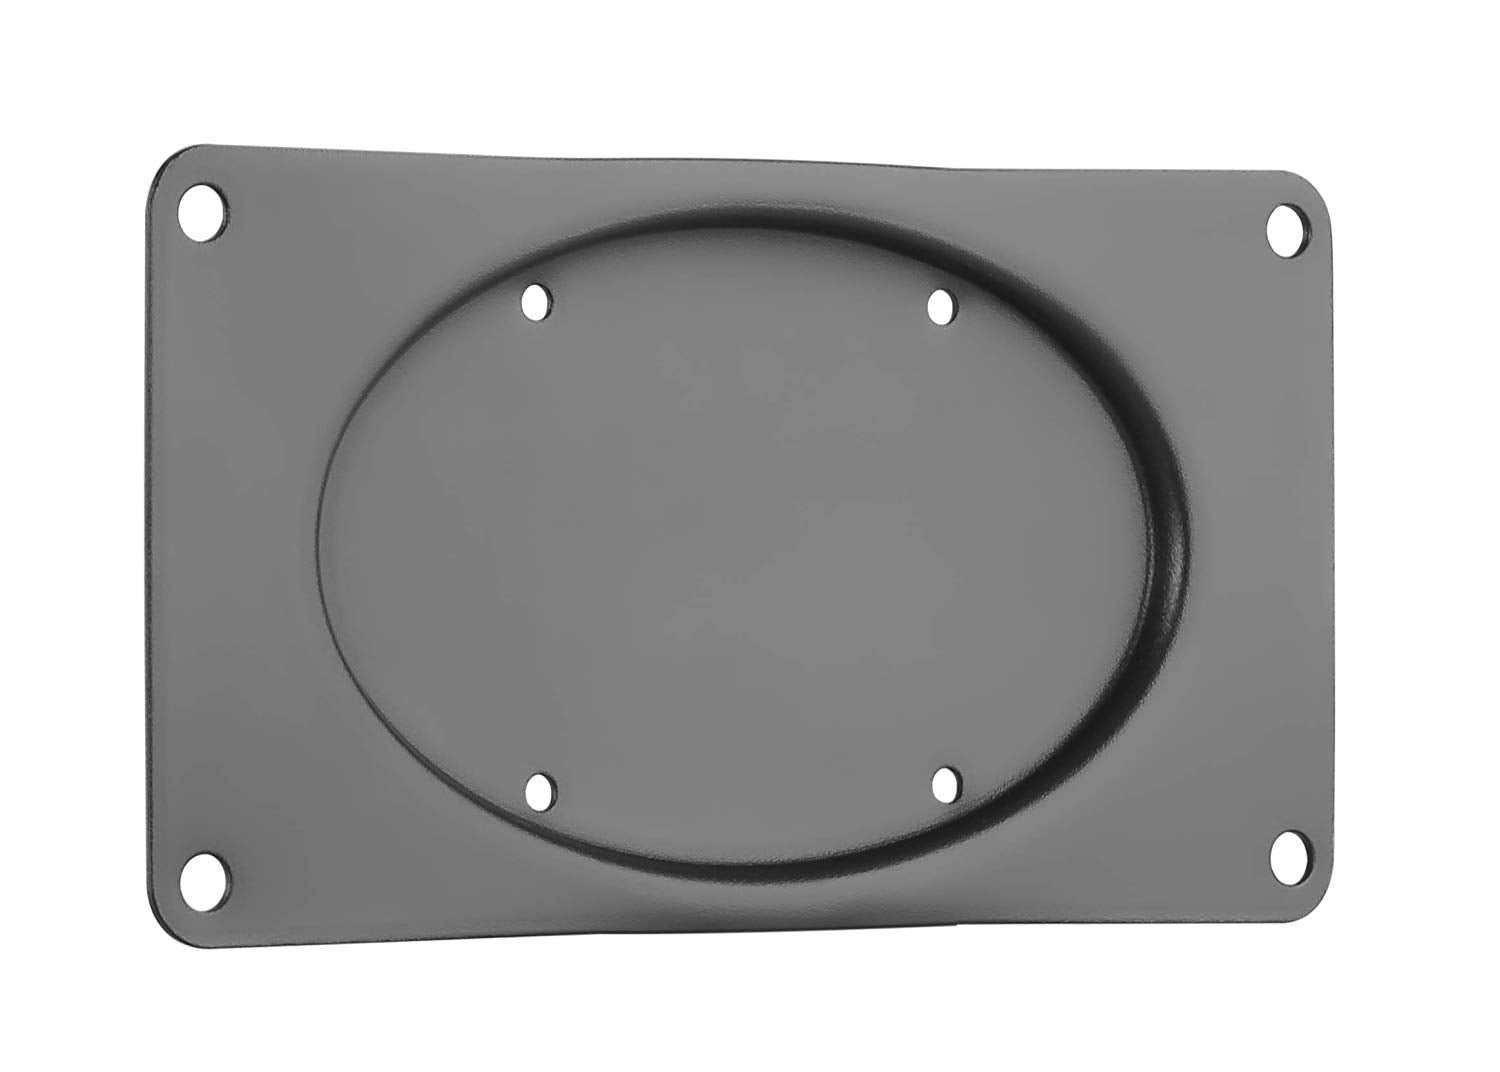 VESA Mount Adapter Plate for TV Mounts, 2 VESA Patterns